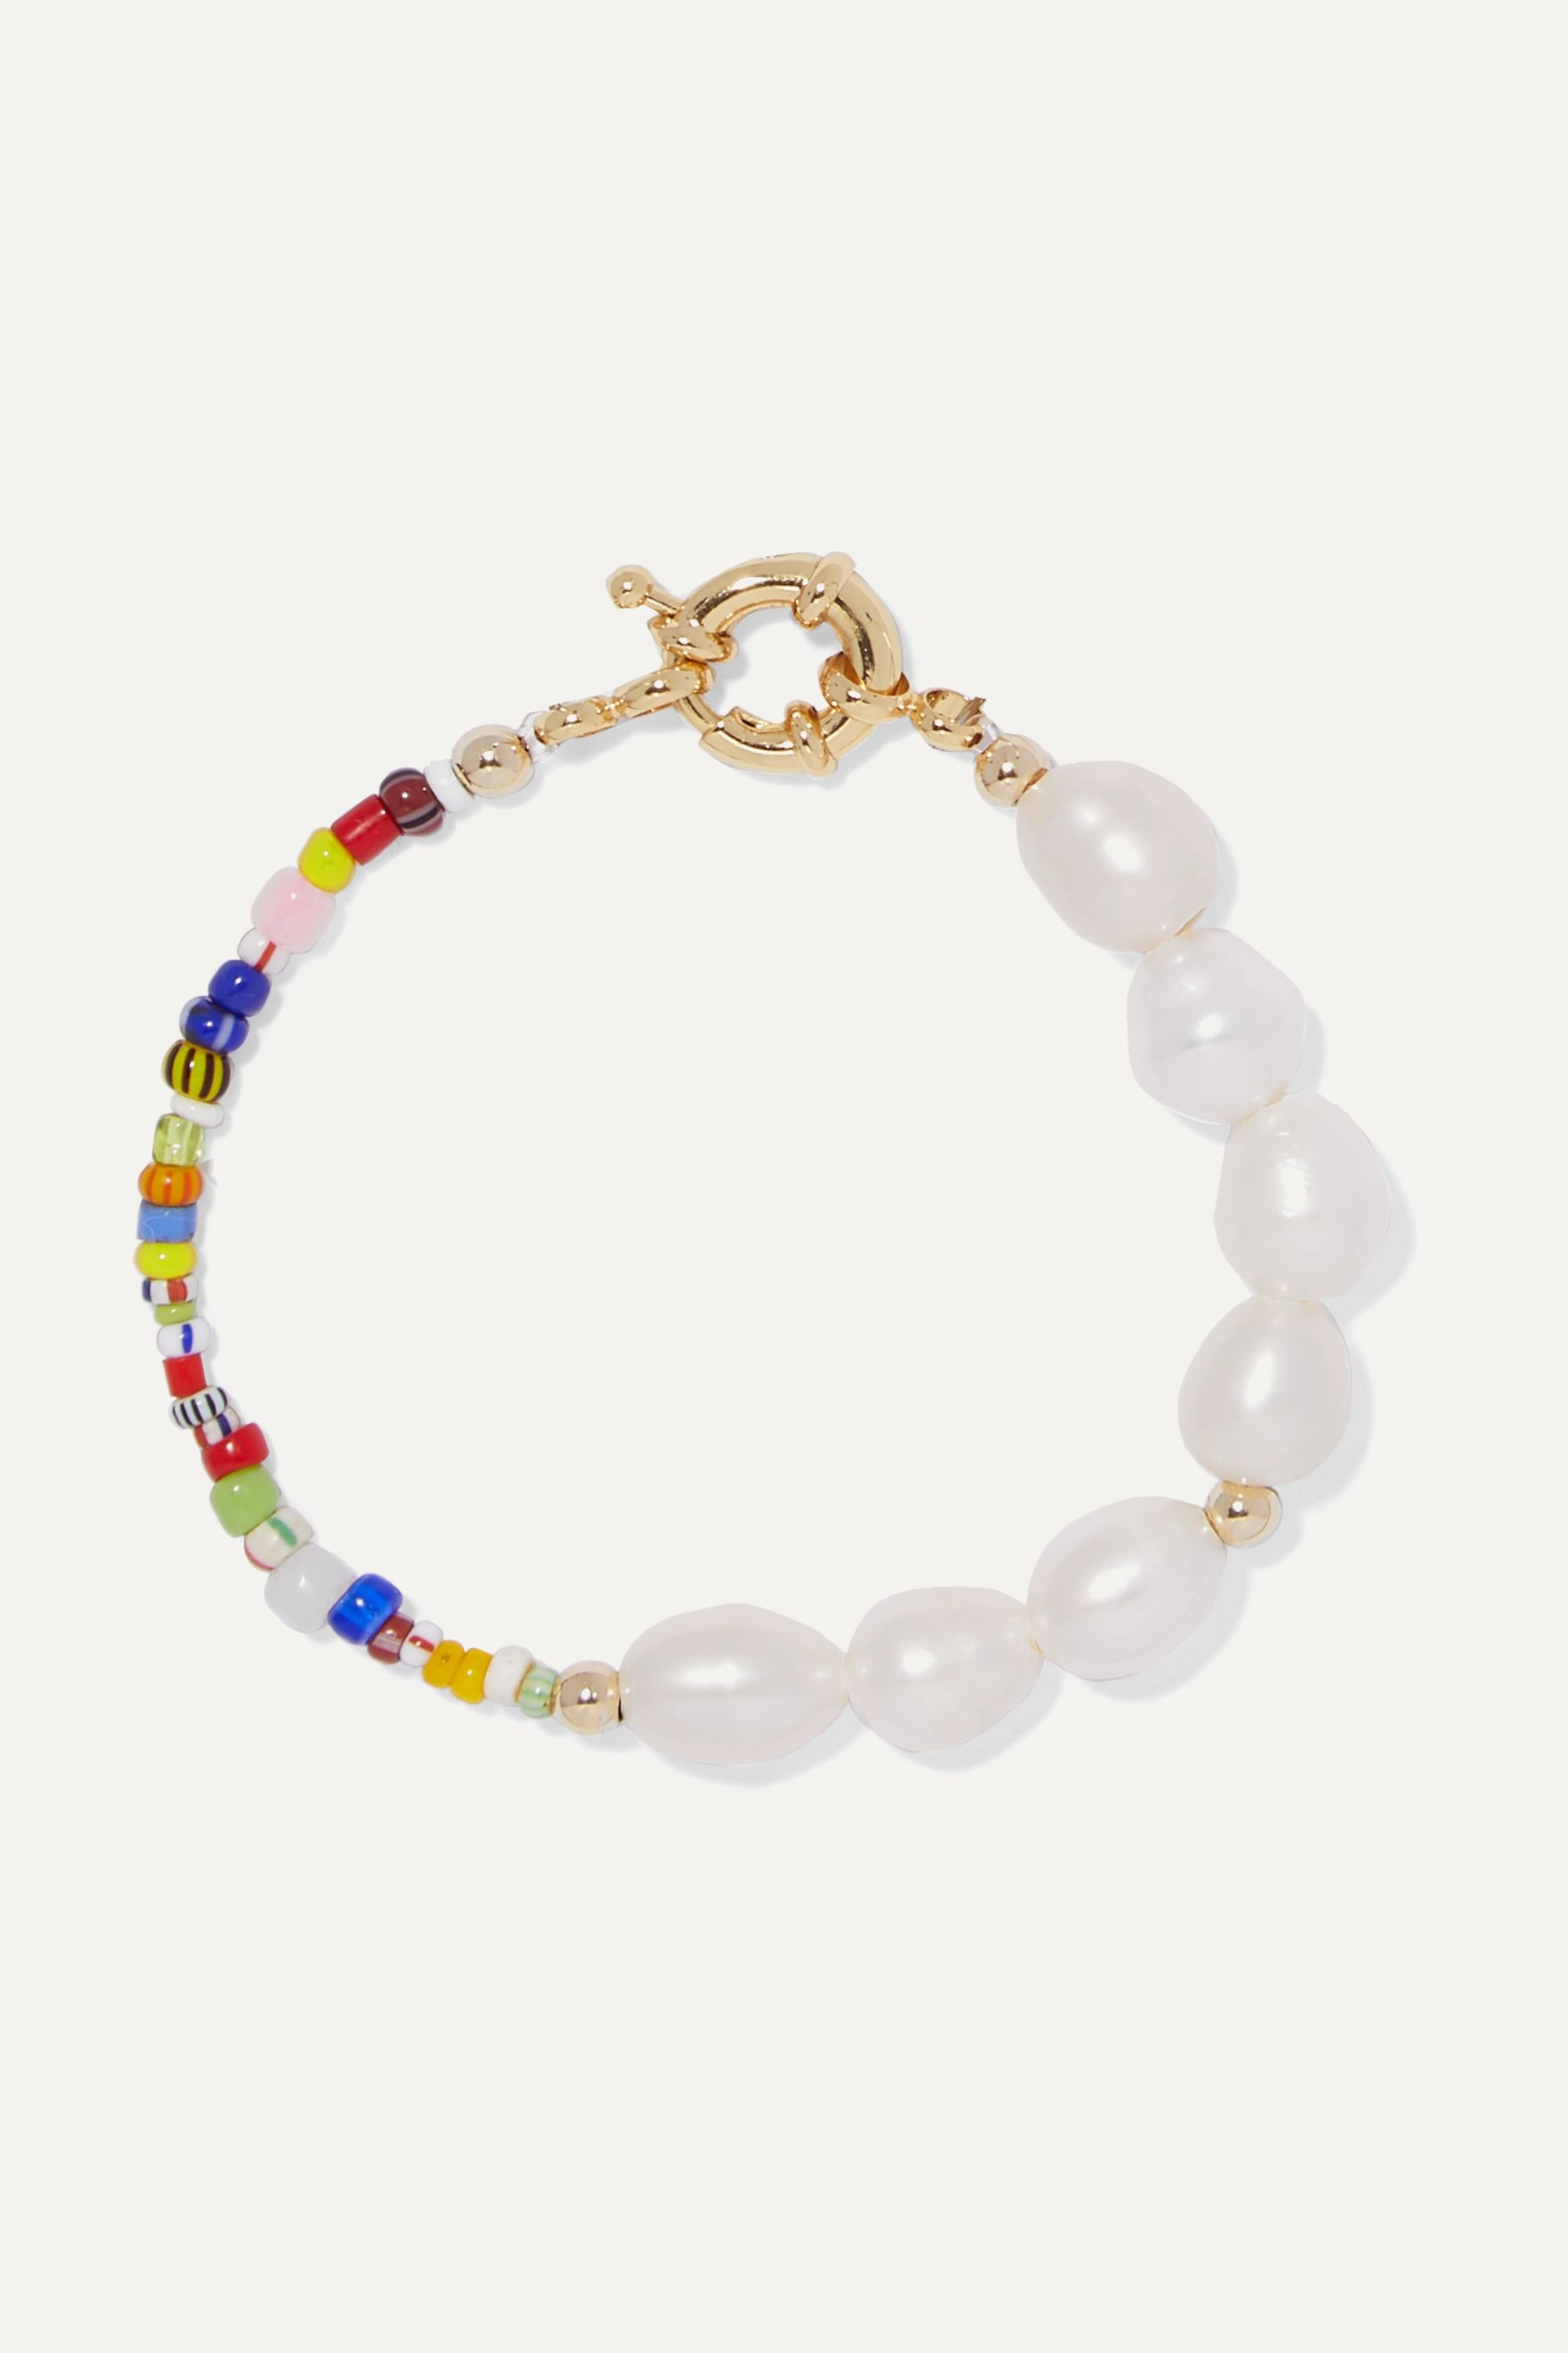 éliou Thao gold-plated, pearl and bead bracelet